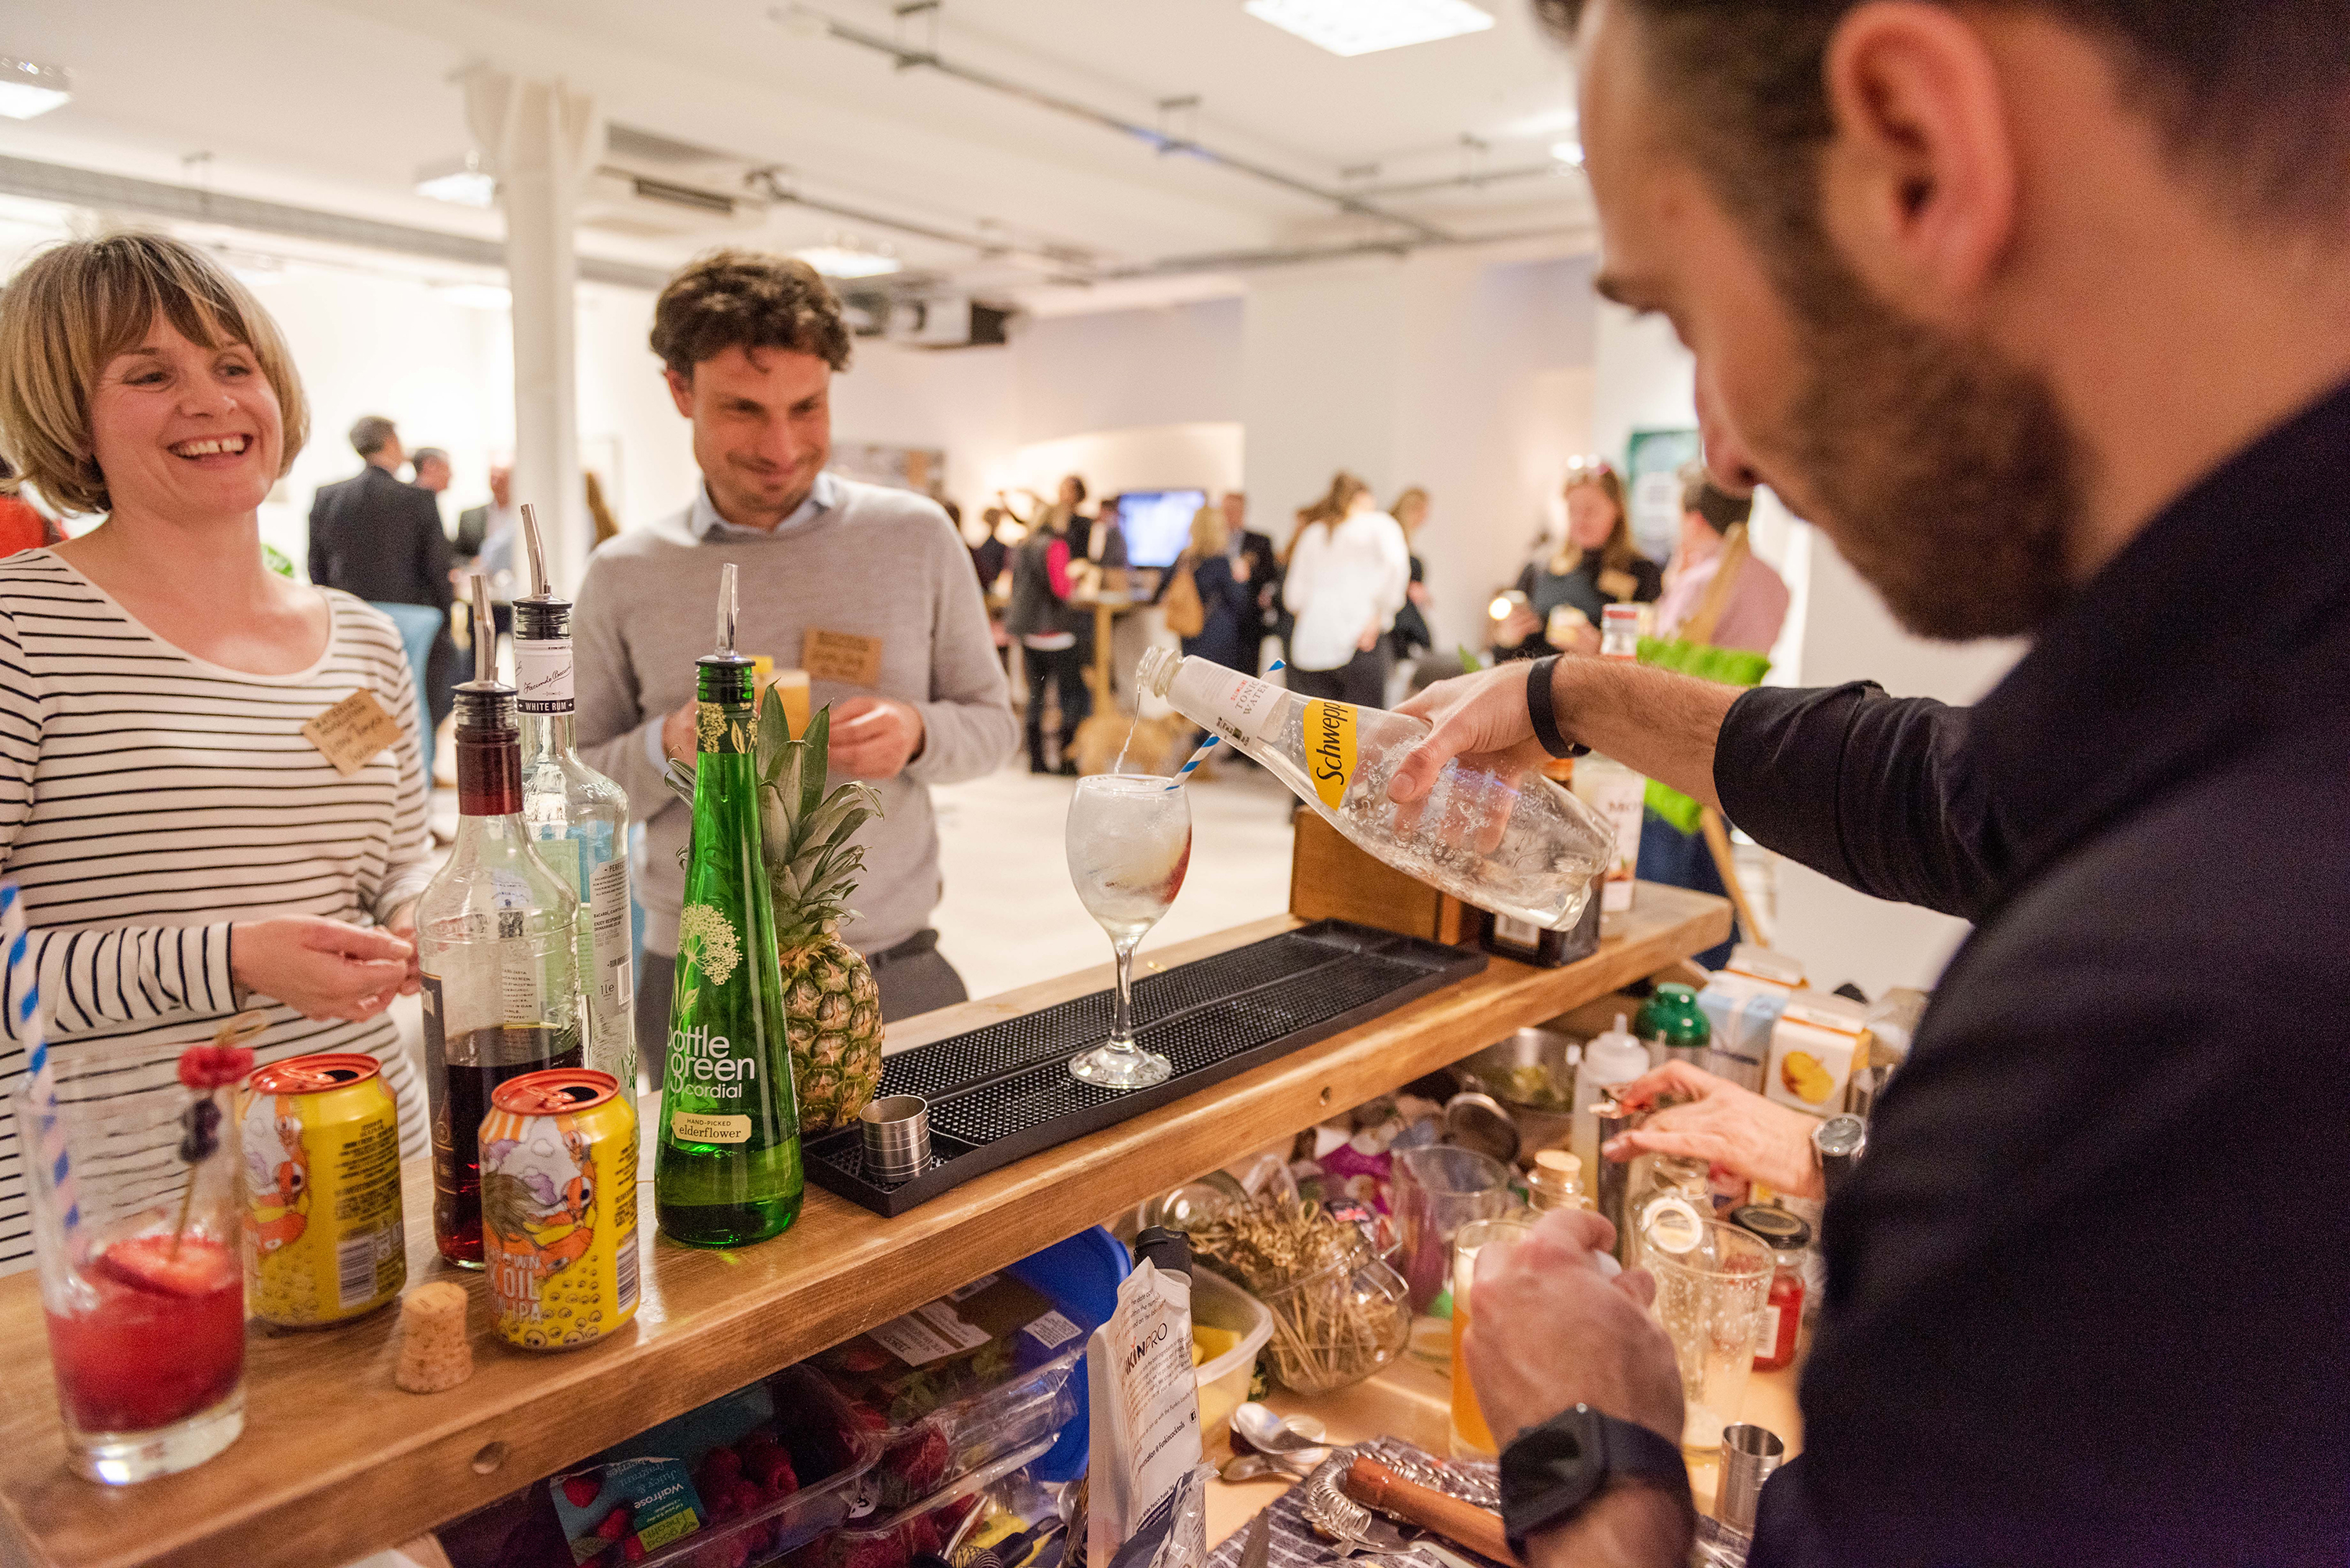 Guests were treated to vegan cocktails and beer